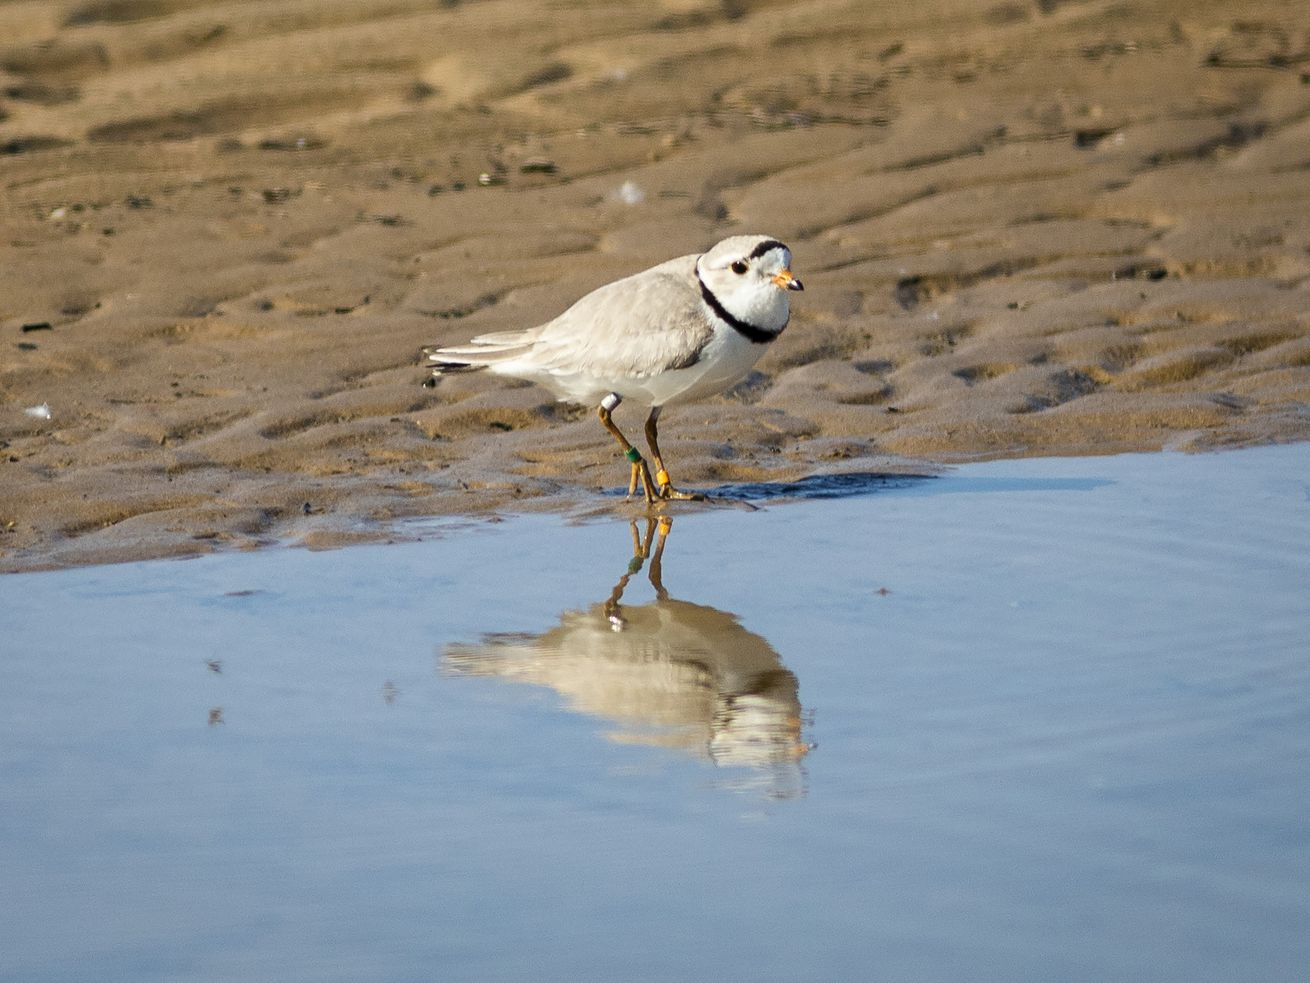 A piping plover walks in the area sectioned off for the endangered species on Montrose Beach in June 2019.